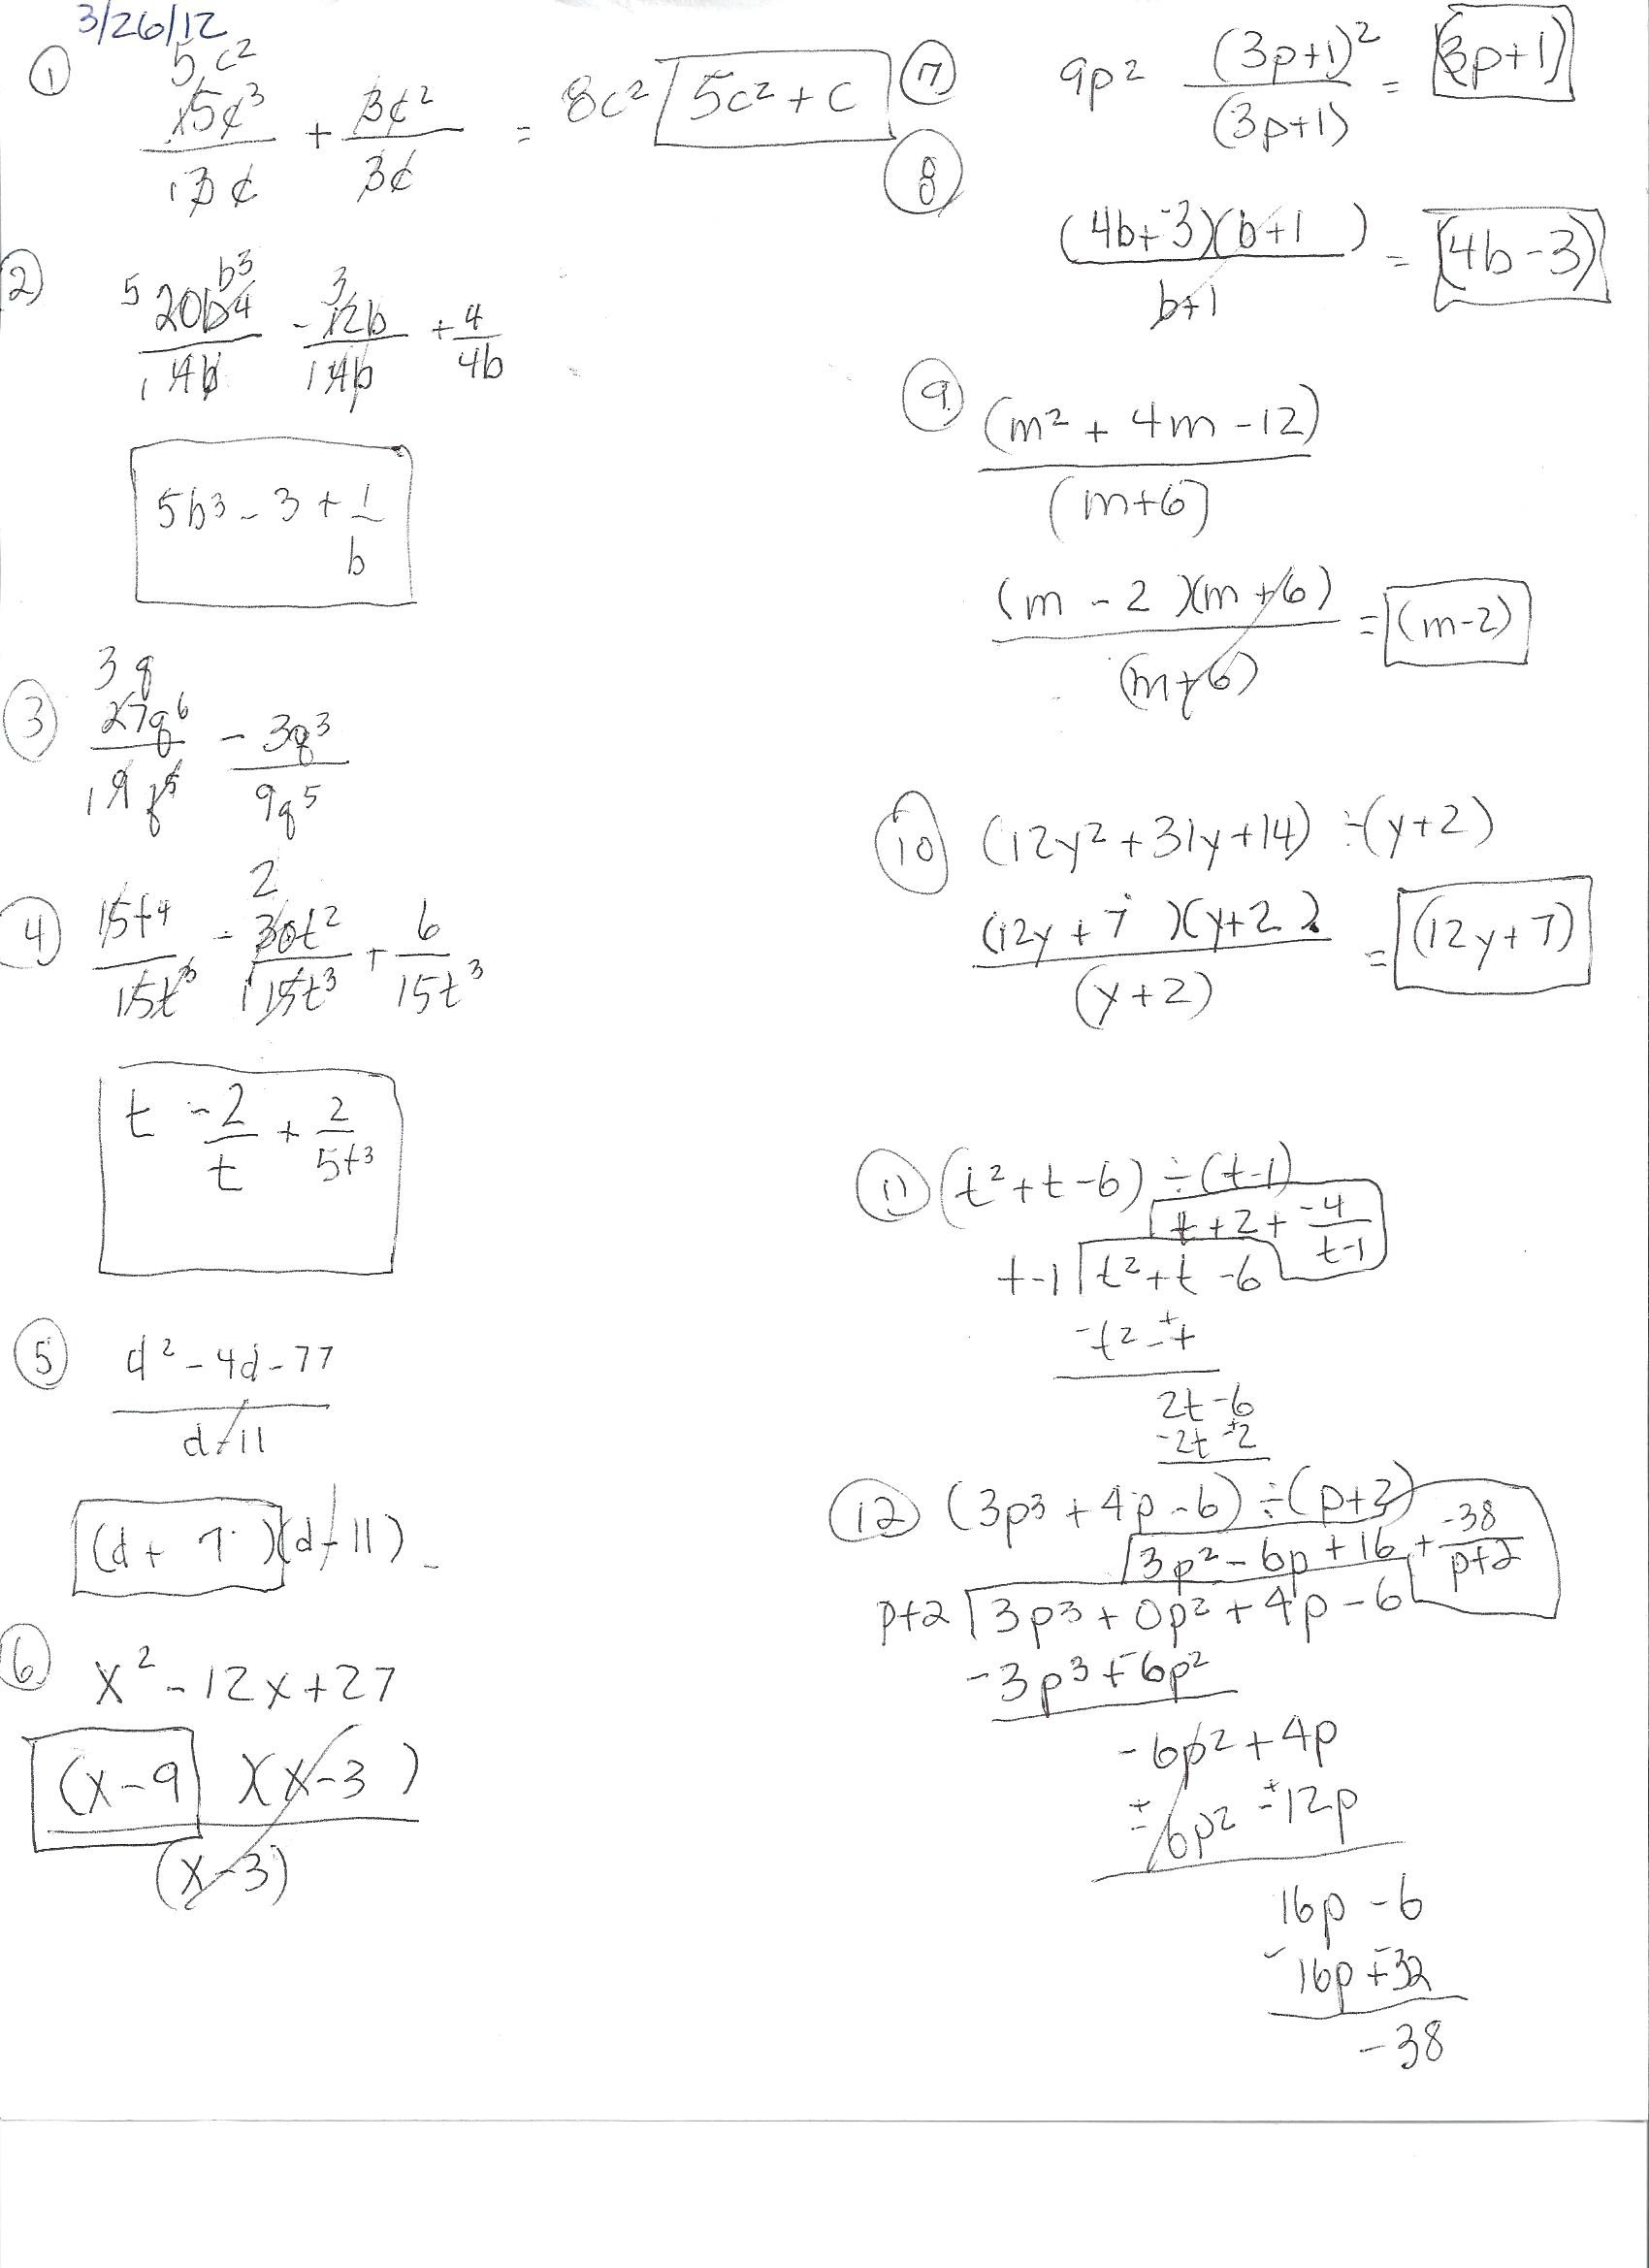 worksheet Algebra 1 algebra 1 hhsresourceprogram homework page 70 in workbook 03 26 12 jpg